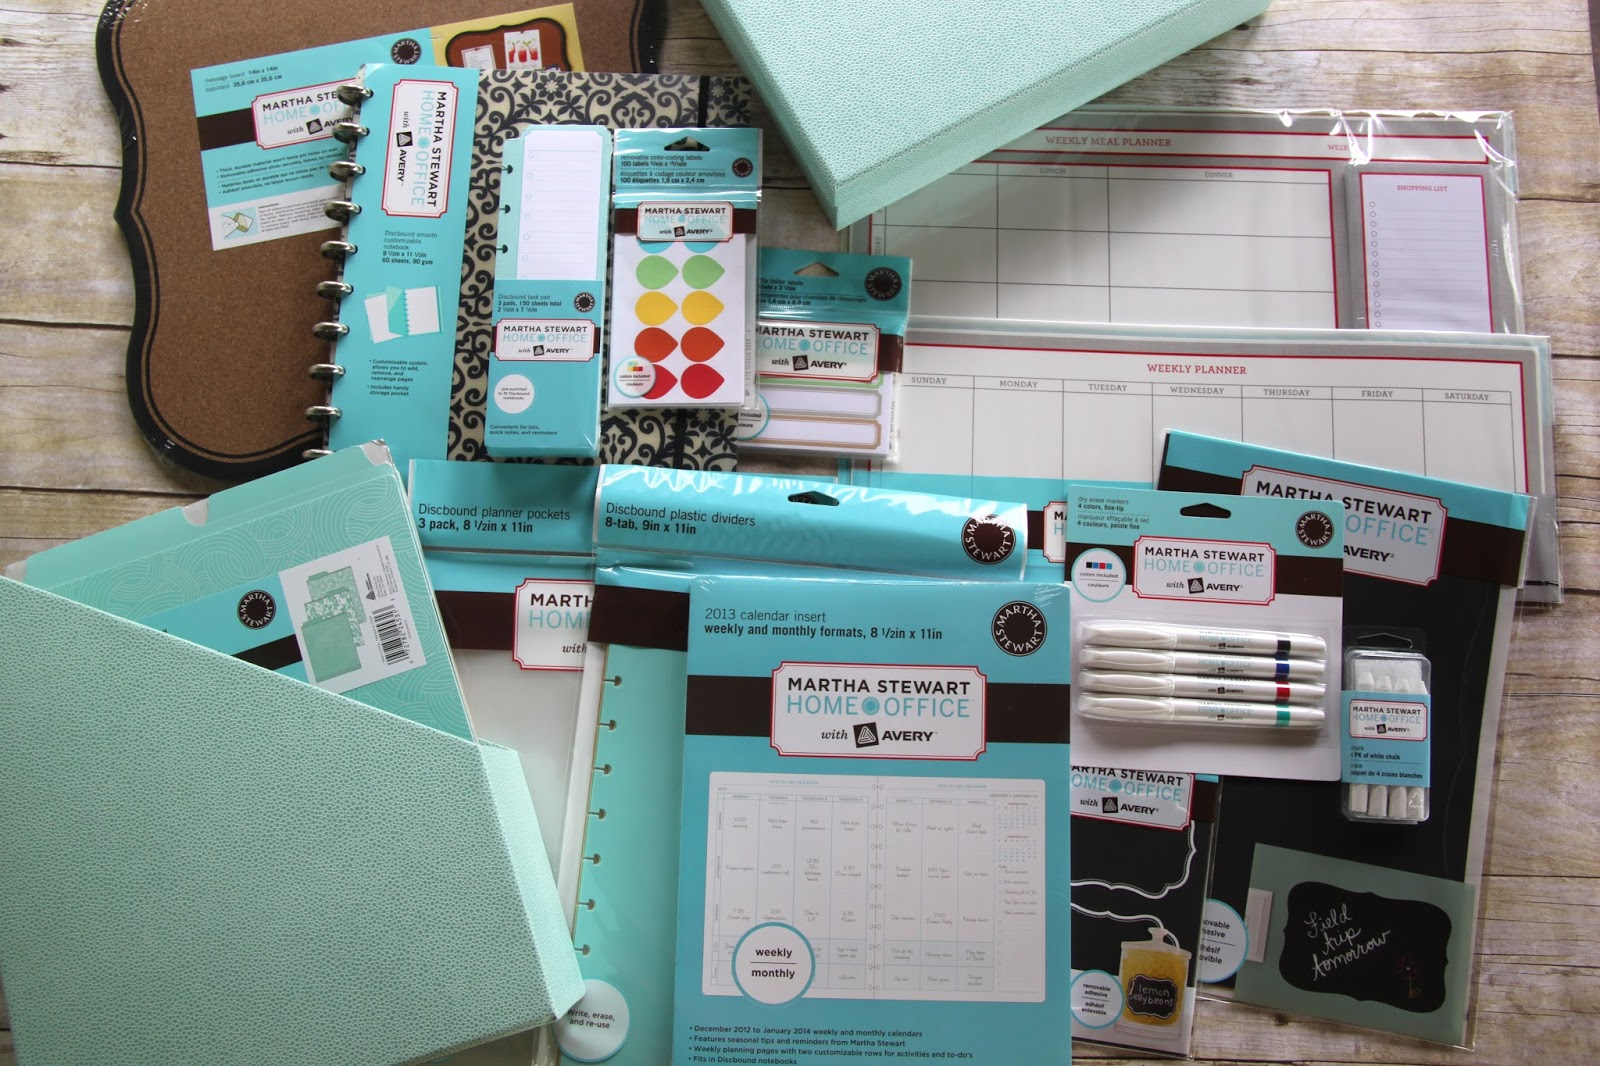 Back to school organization with martha stewart home office with avery plus giveaway - Back to school organization ...